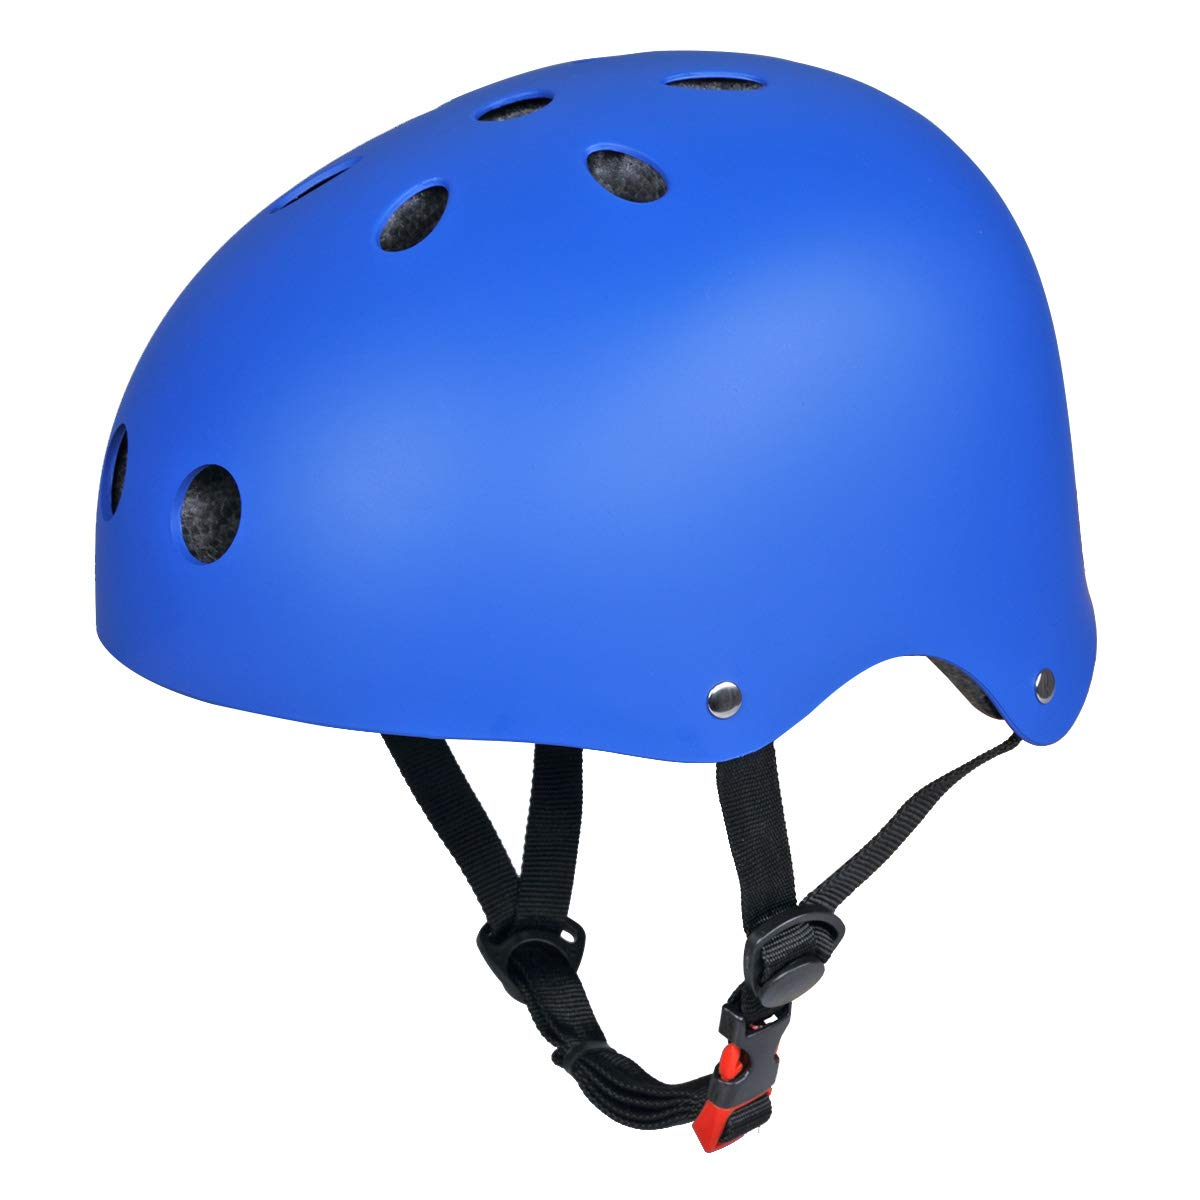 BMX/Skateboarding/Scooter Helmet Ultimate Cycle/Bike/Skate/Roller Helmet Impact Resistance for Mult